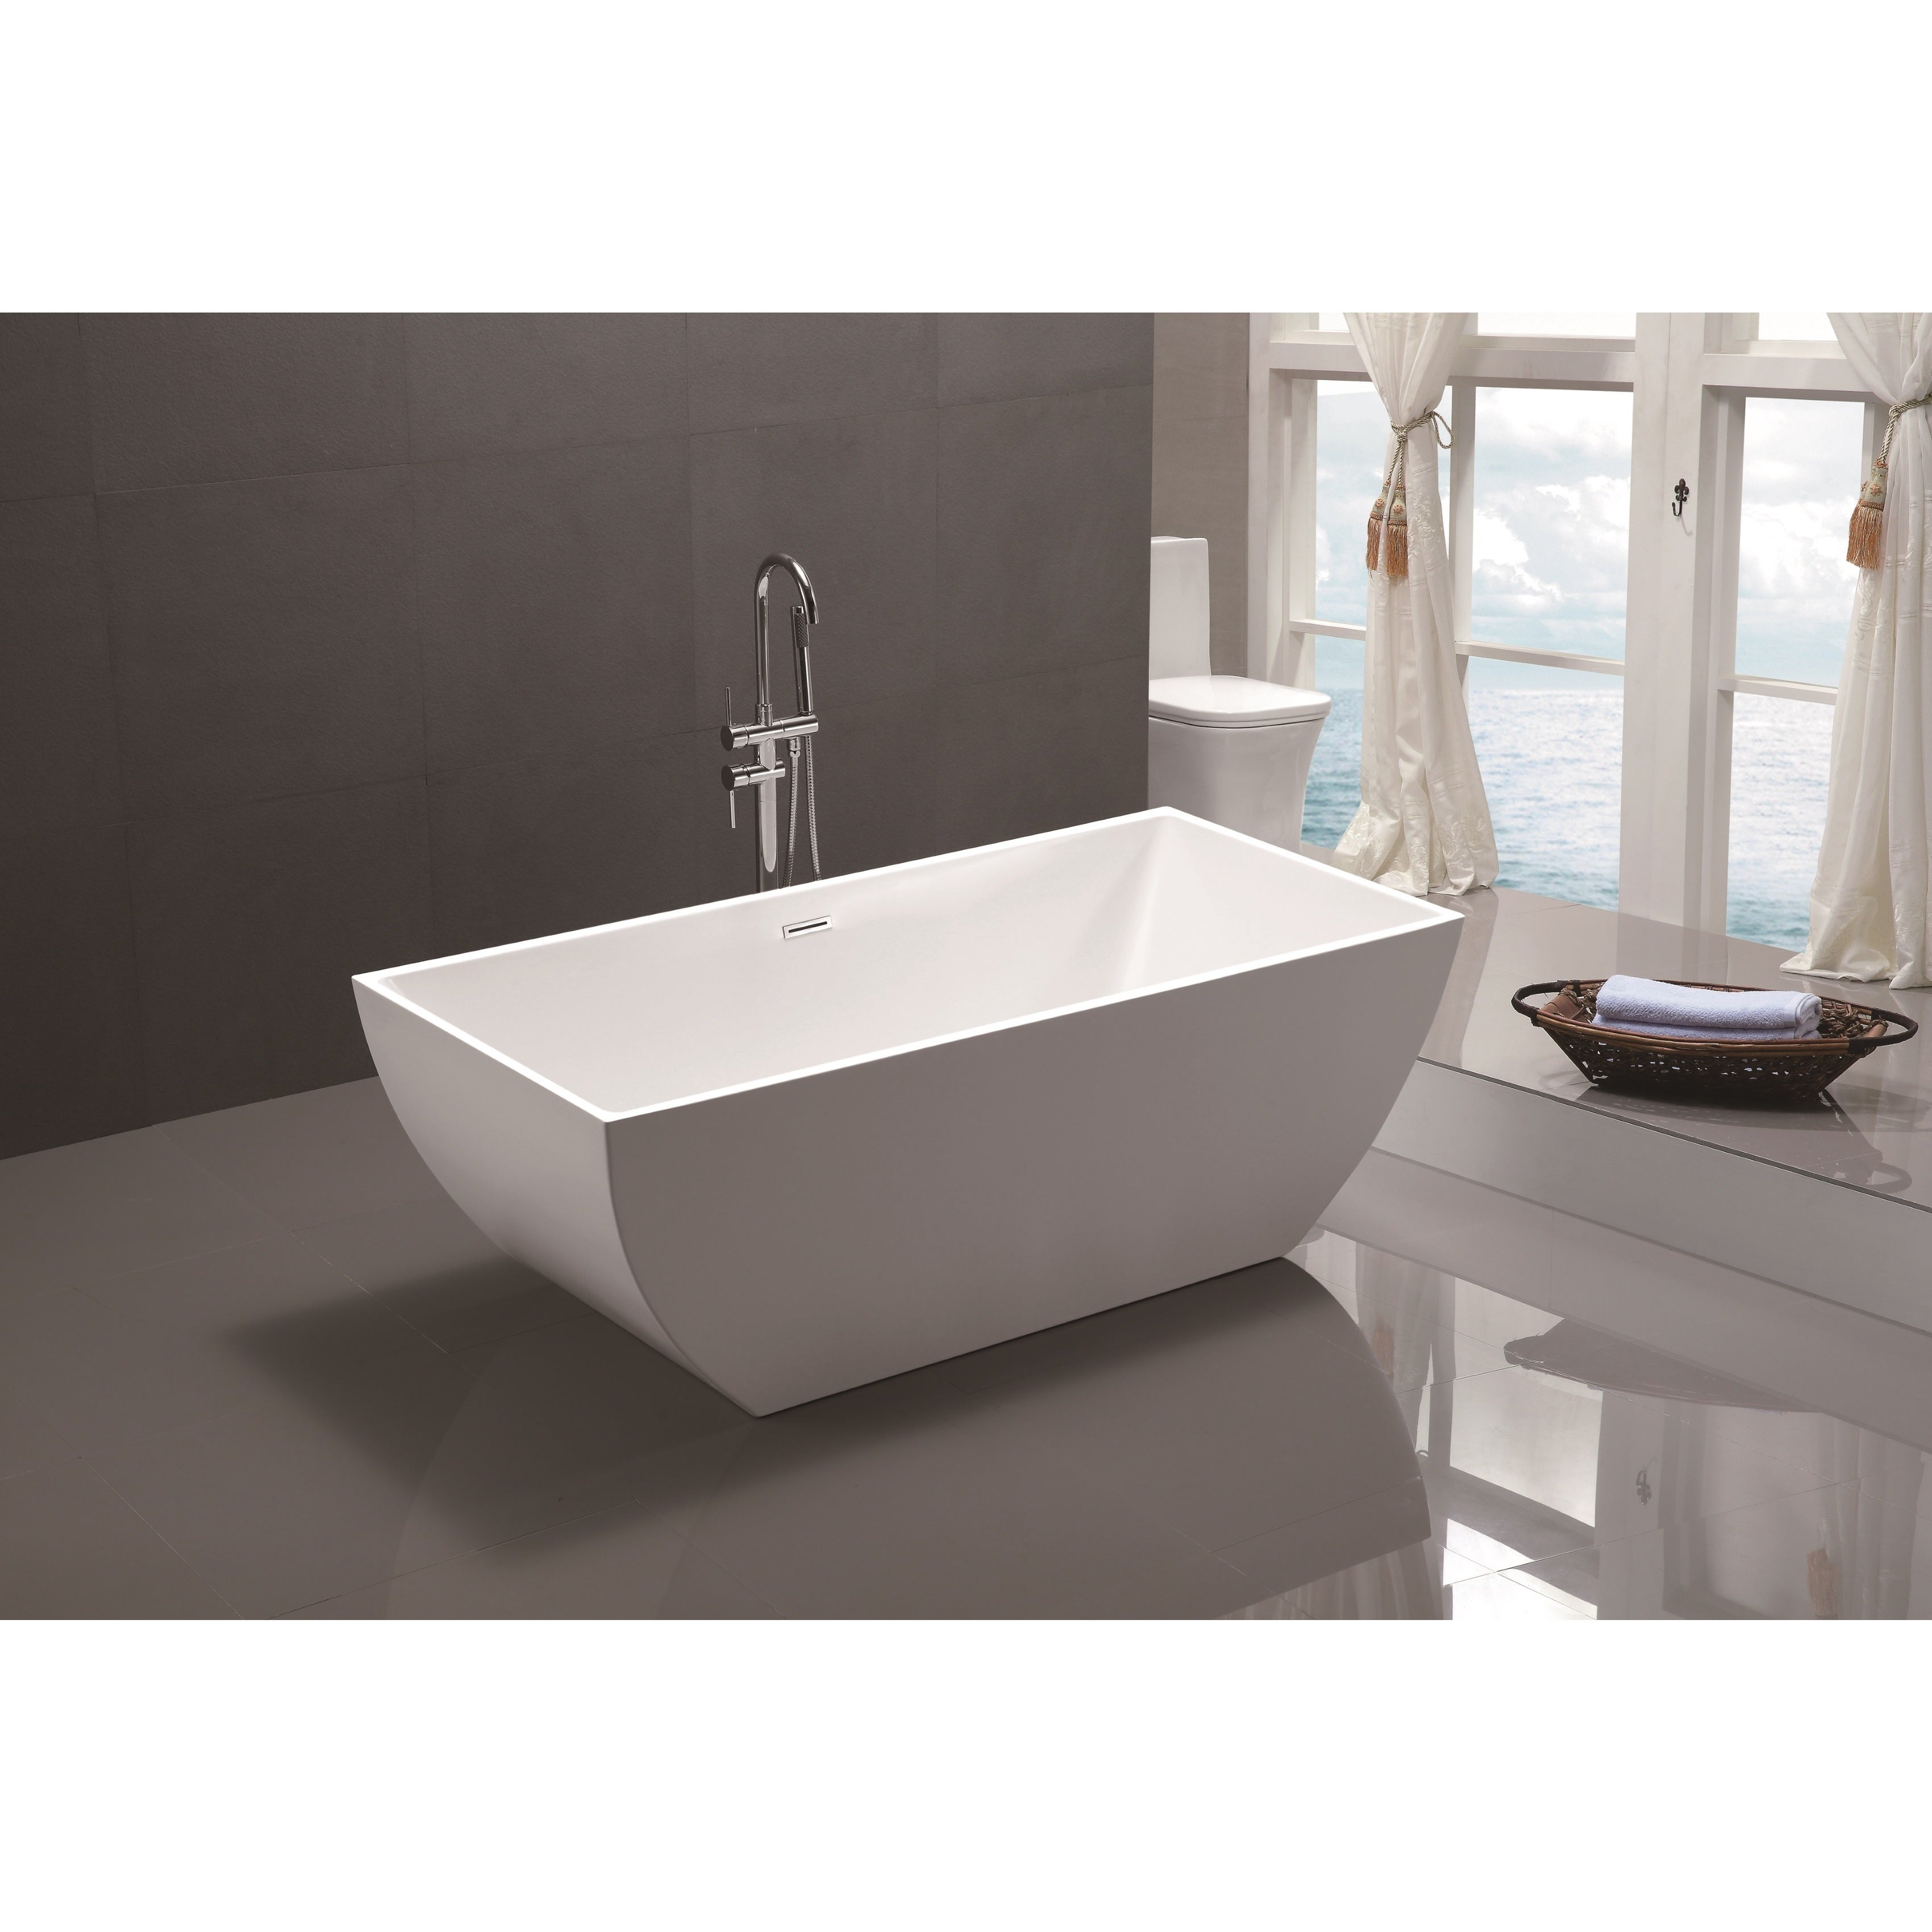 Shop Vanity Art 59-inch Freestanding Acrylic Soaking Bathtub - Free ...